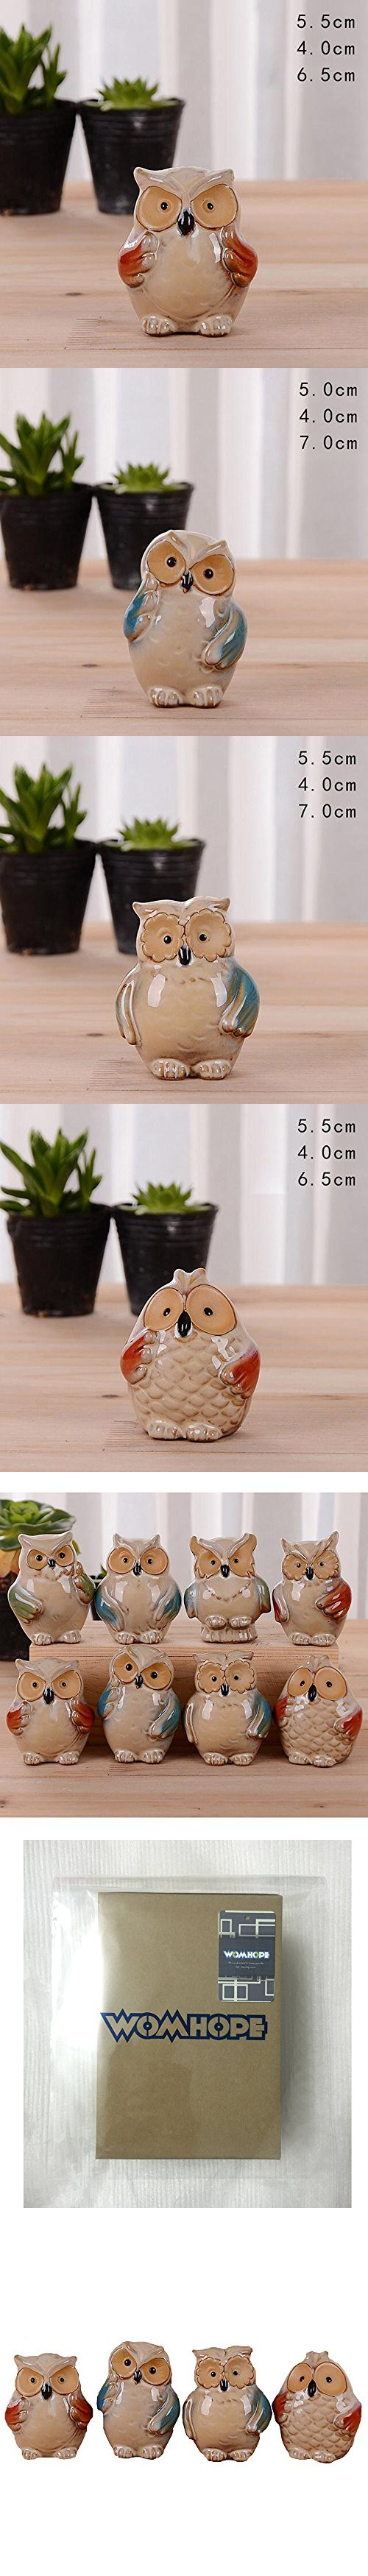 WOMHOPE 4 Pcs - Small Colorful Wise Owls Figurine House Warming Gift Tabletop Shelf Ceramic Home Decorative Collectible Figurine Statues (B)